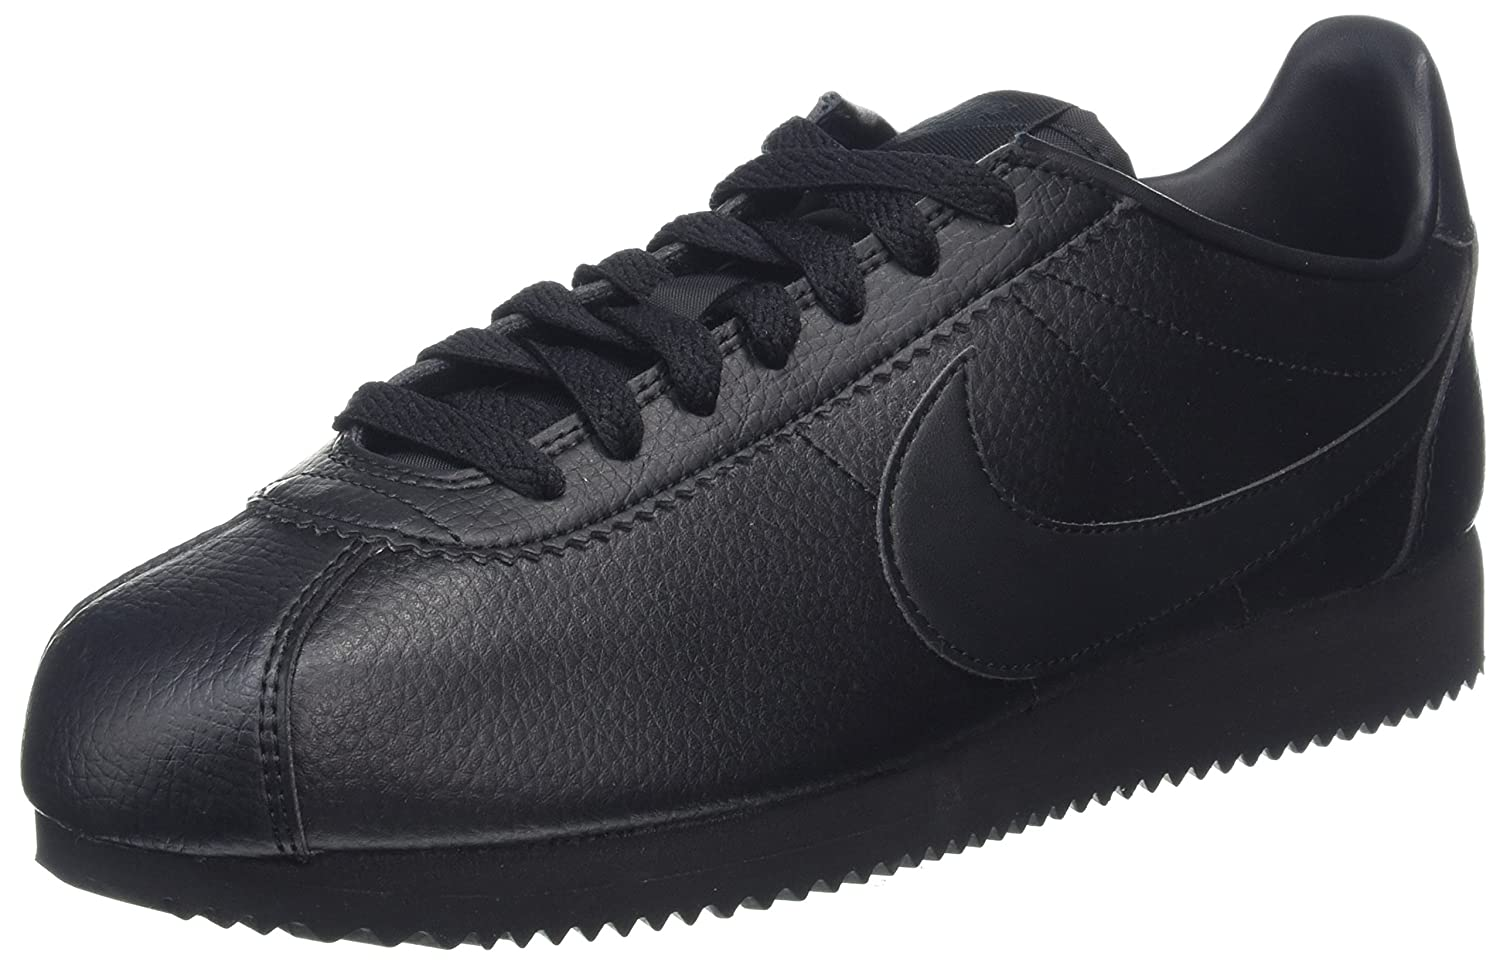 new style 0222f 05273 Amazon.com   Nike Men s Classic Cortez Leather Running Shoes   Road Running